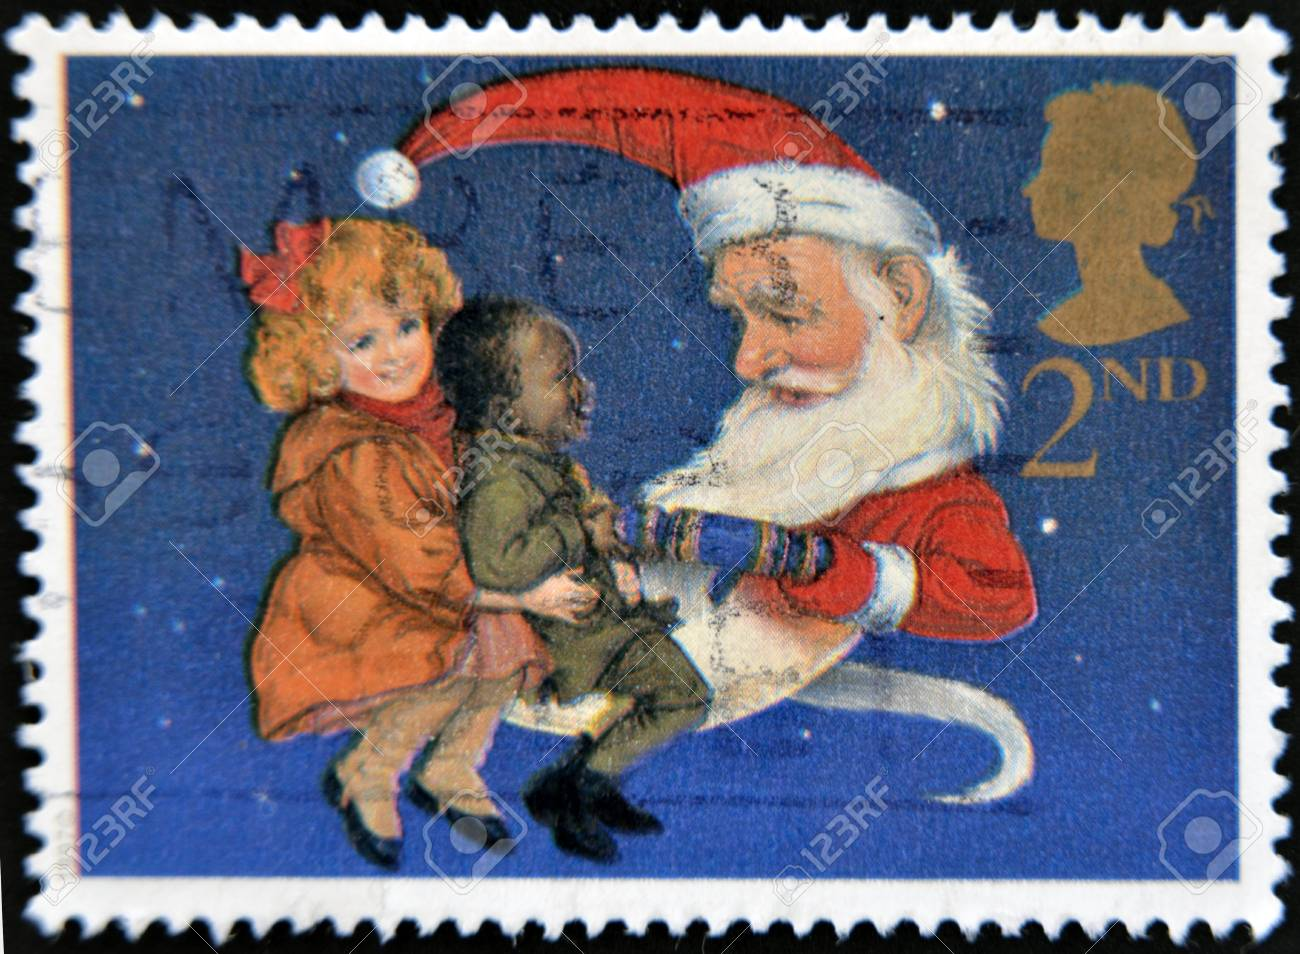 UNITED KINGDOM - CIRCA 1997: A stamp printed in Great Britain showing Children and Father Christmas pulling a Christmas Cracker, circa 1997  Stock Photo - 14137242